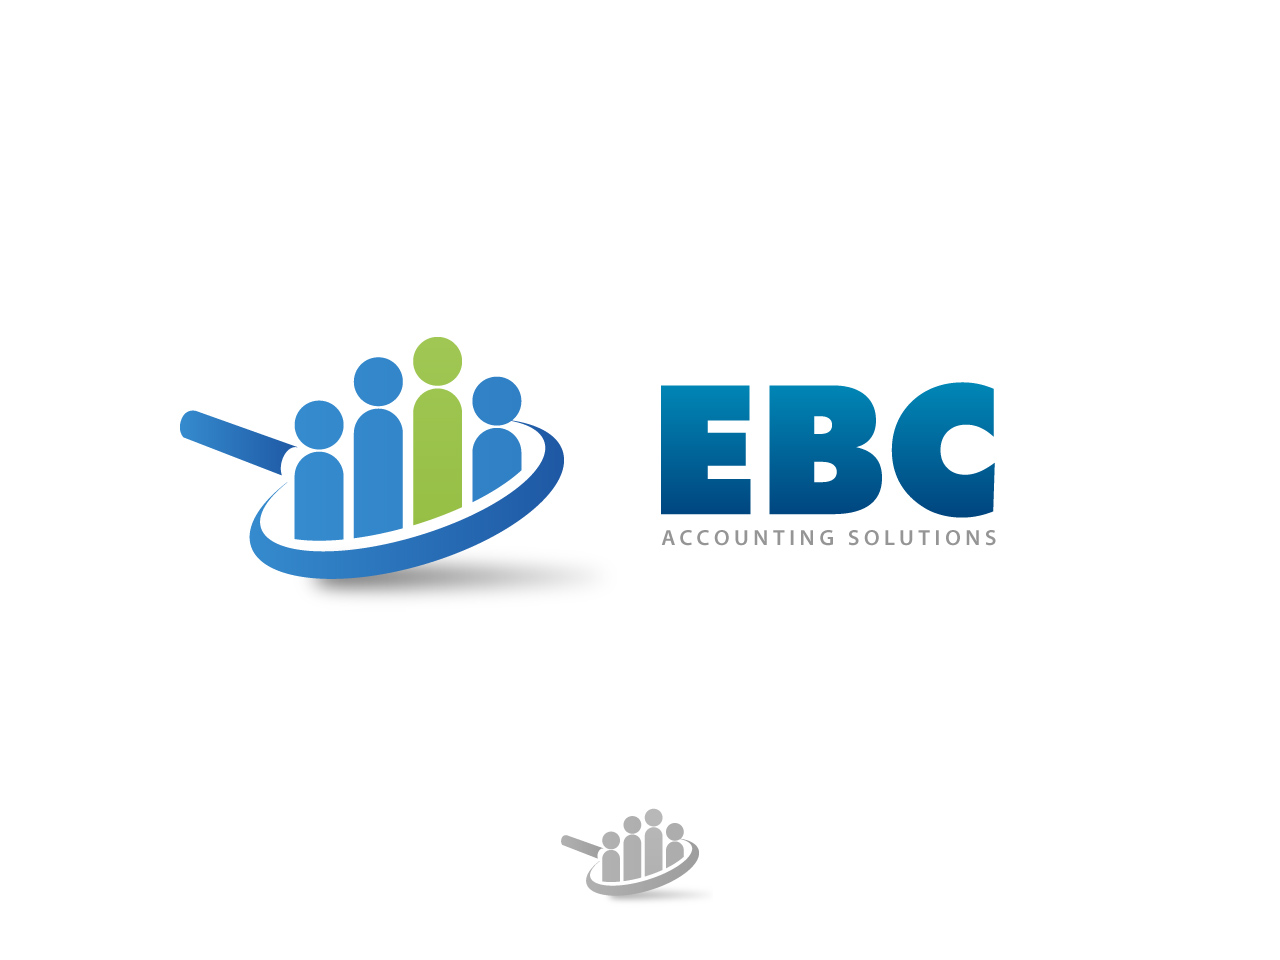 Logo Design by jpbituin - Entry No. 73 in the Logo Design Contest New Logo Design for EBC Accounting Solutions.